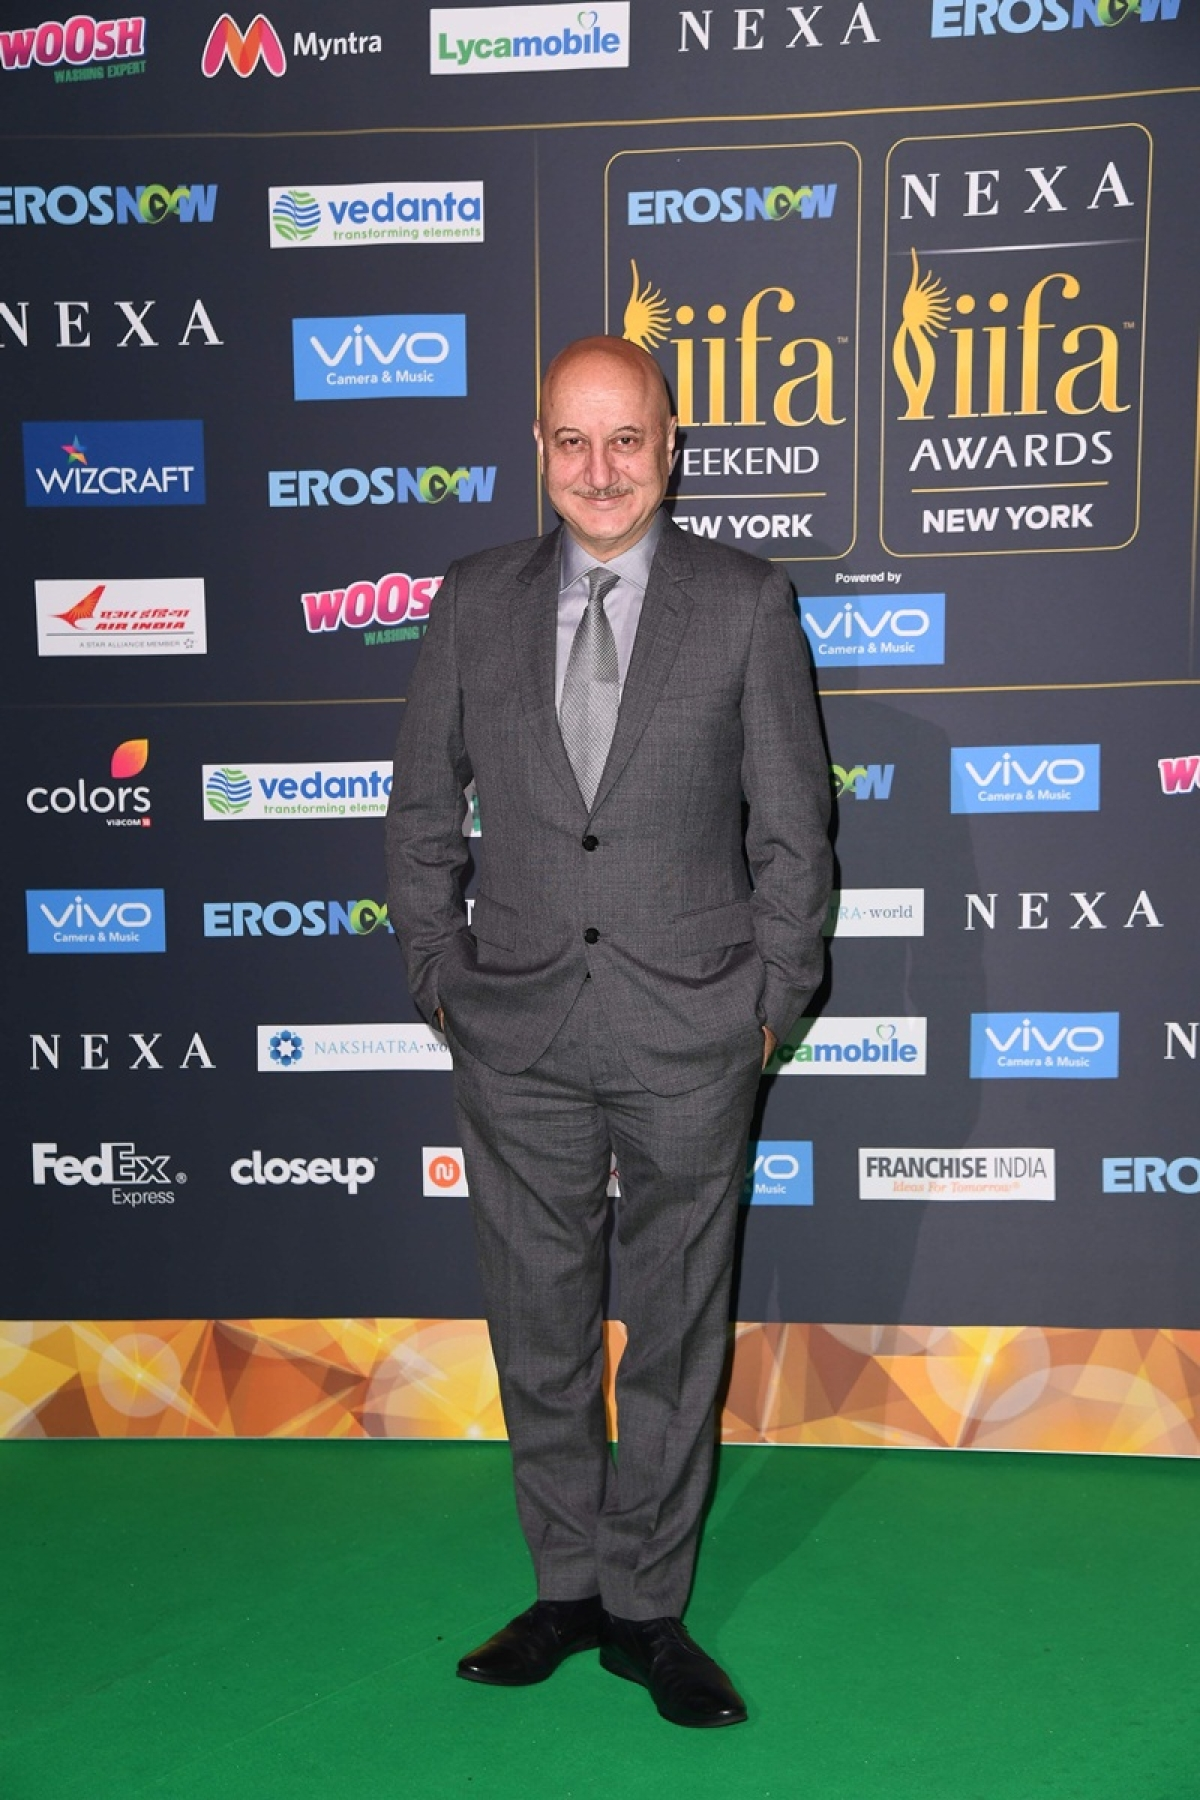 Bollywood Actor Anupam Kher arrives for the IIFA Awards July 15, 2017 at the MetLife Stadium in East Rutherford, New Jersey during the 18th International Indian Film Academy (IIFA) Festival. / AFP PHOTO / ANGELA WEISS